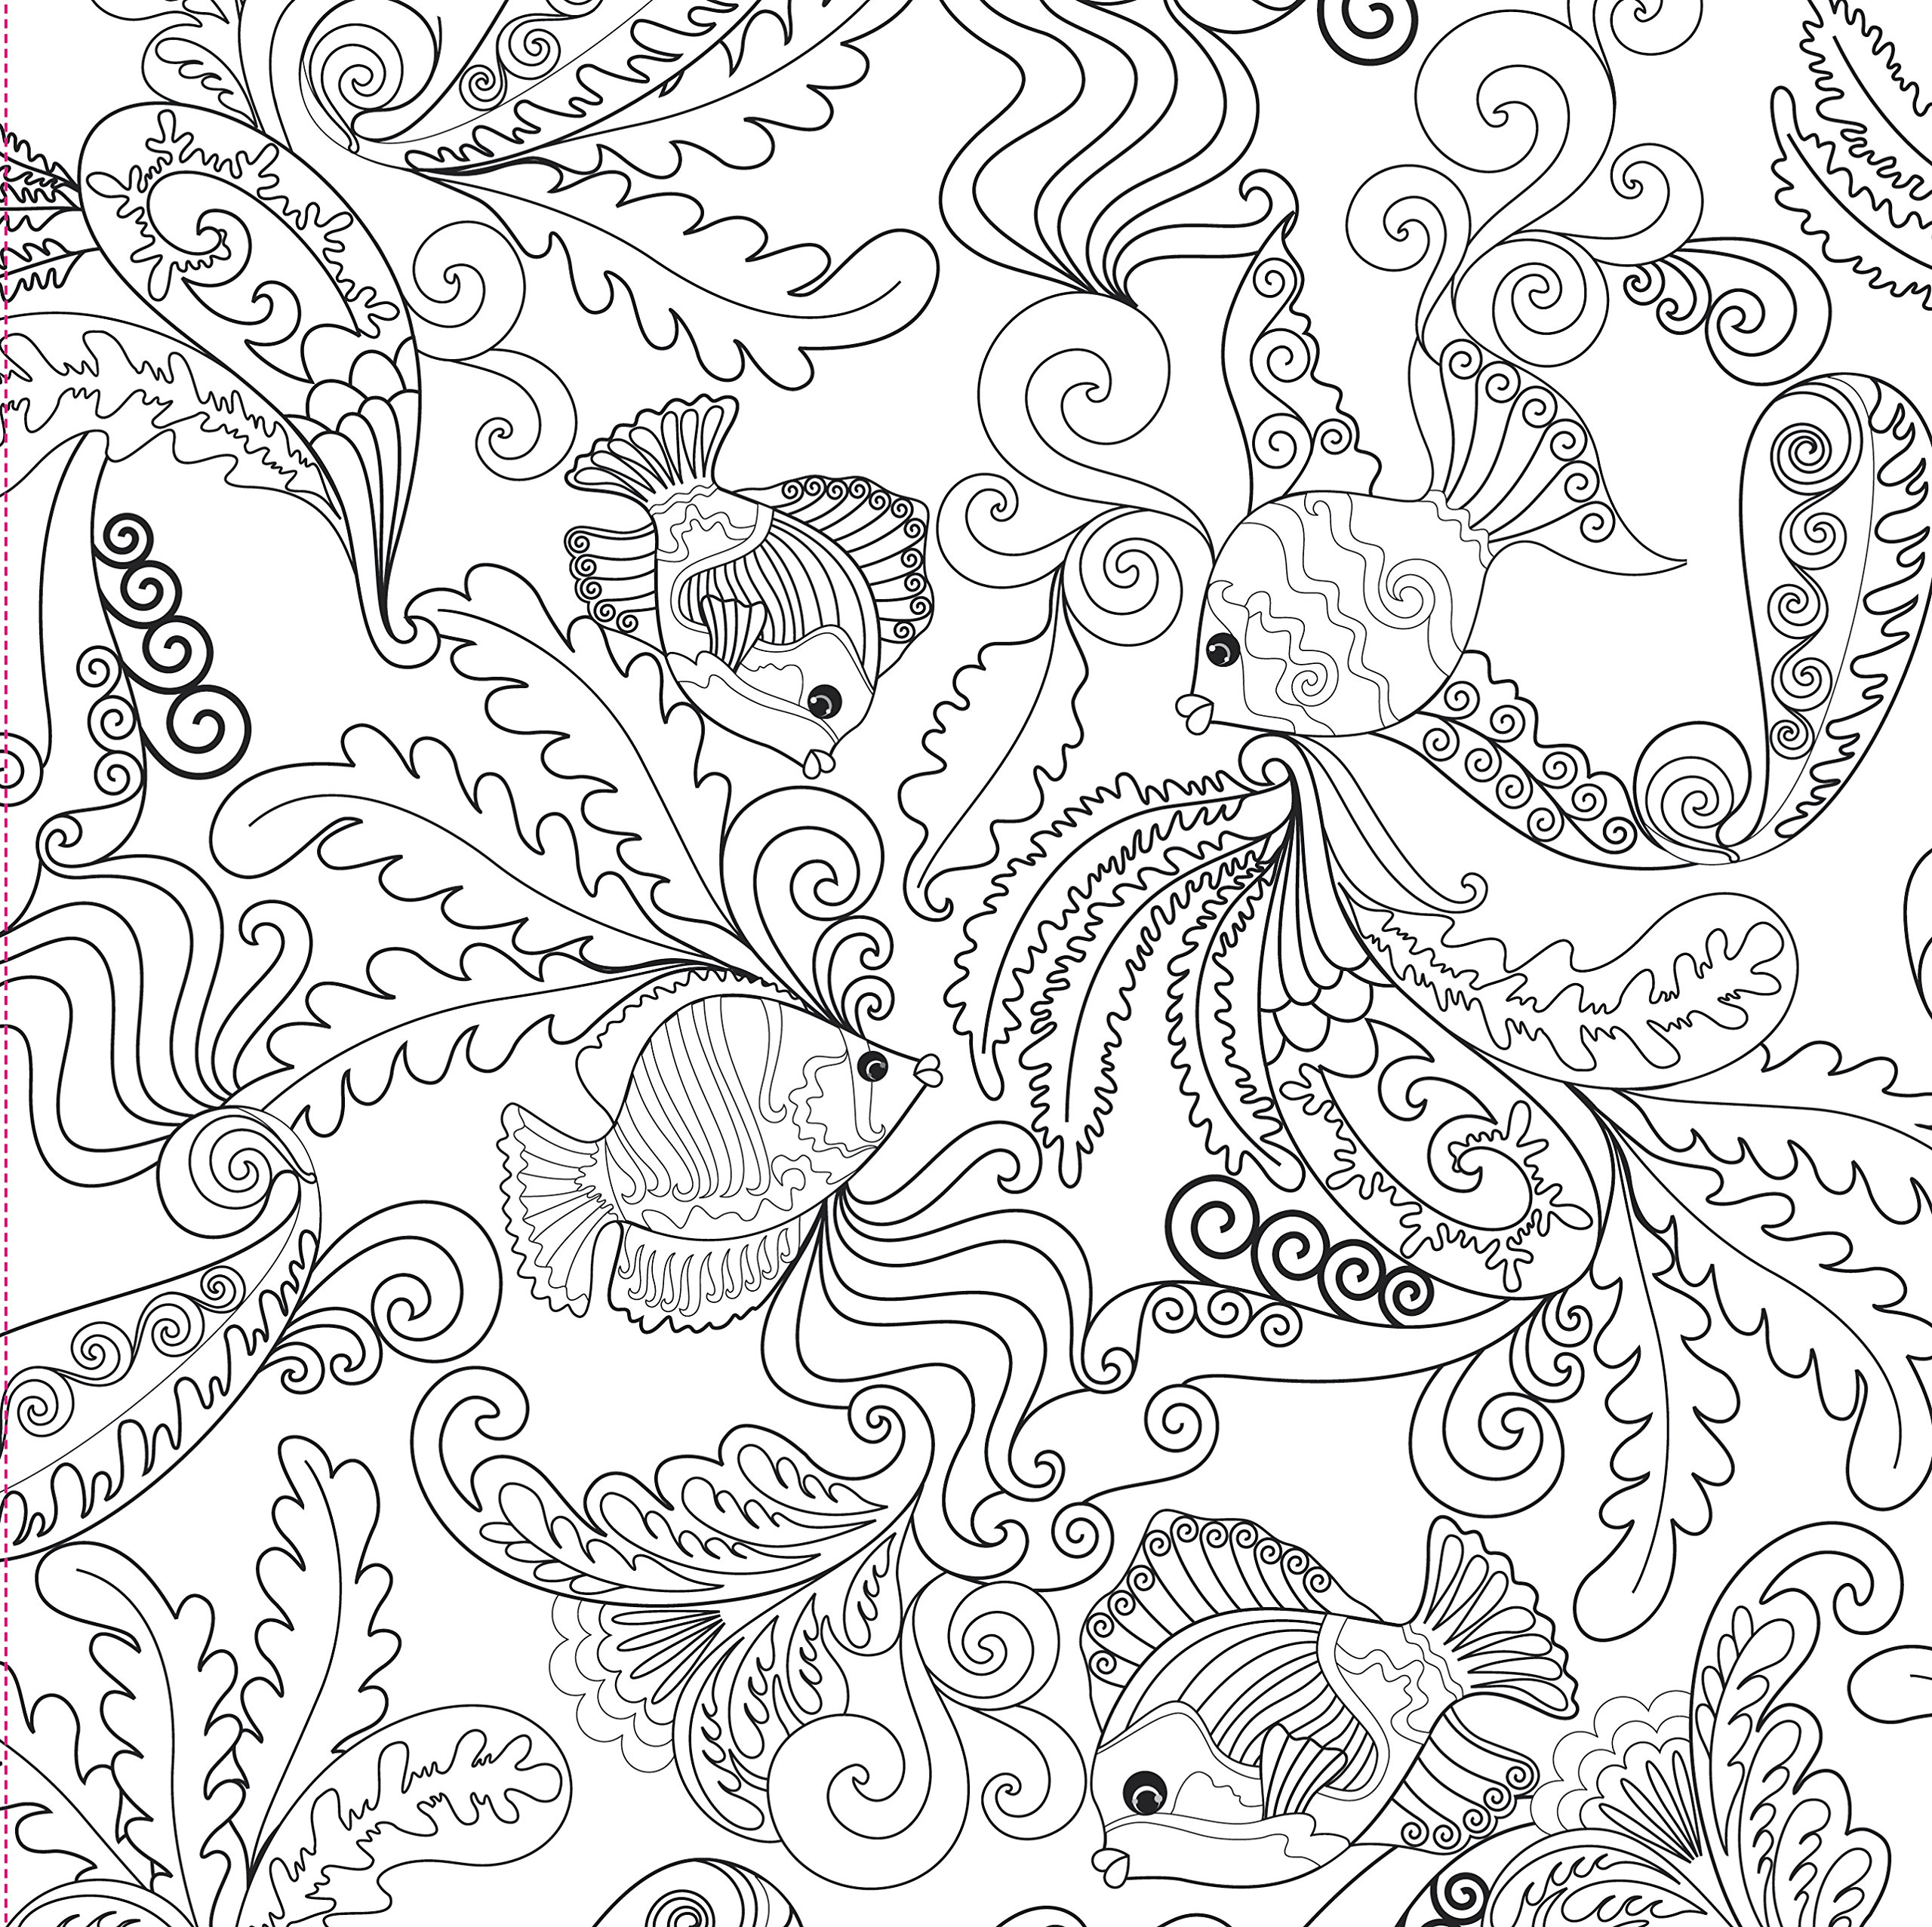 Amazon Com Ocean Designs Adult Coloring Book 31 Stress Relieving